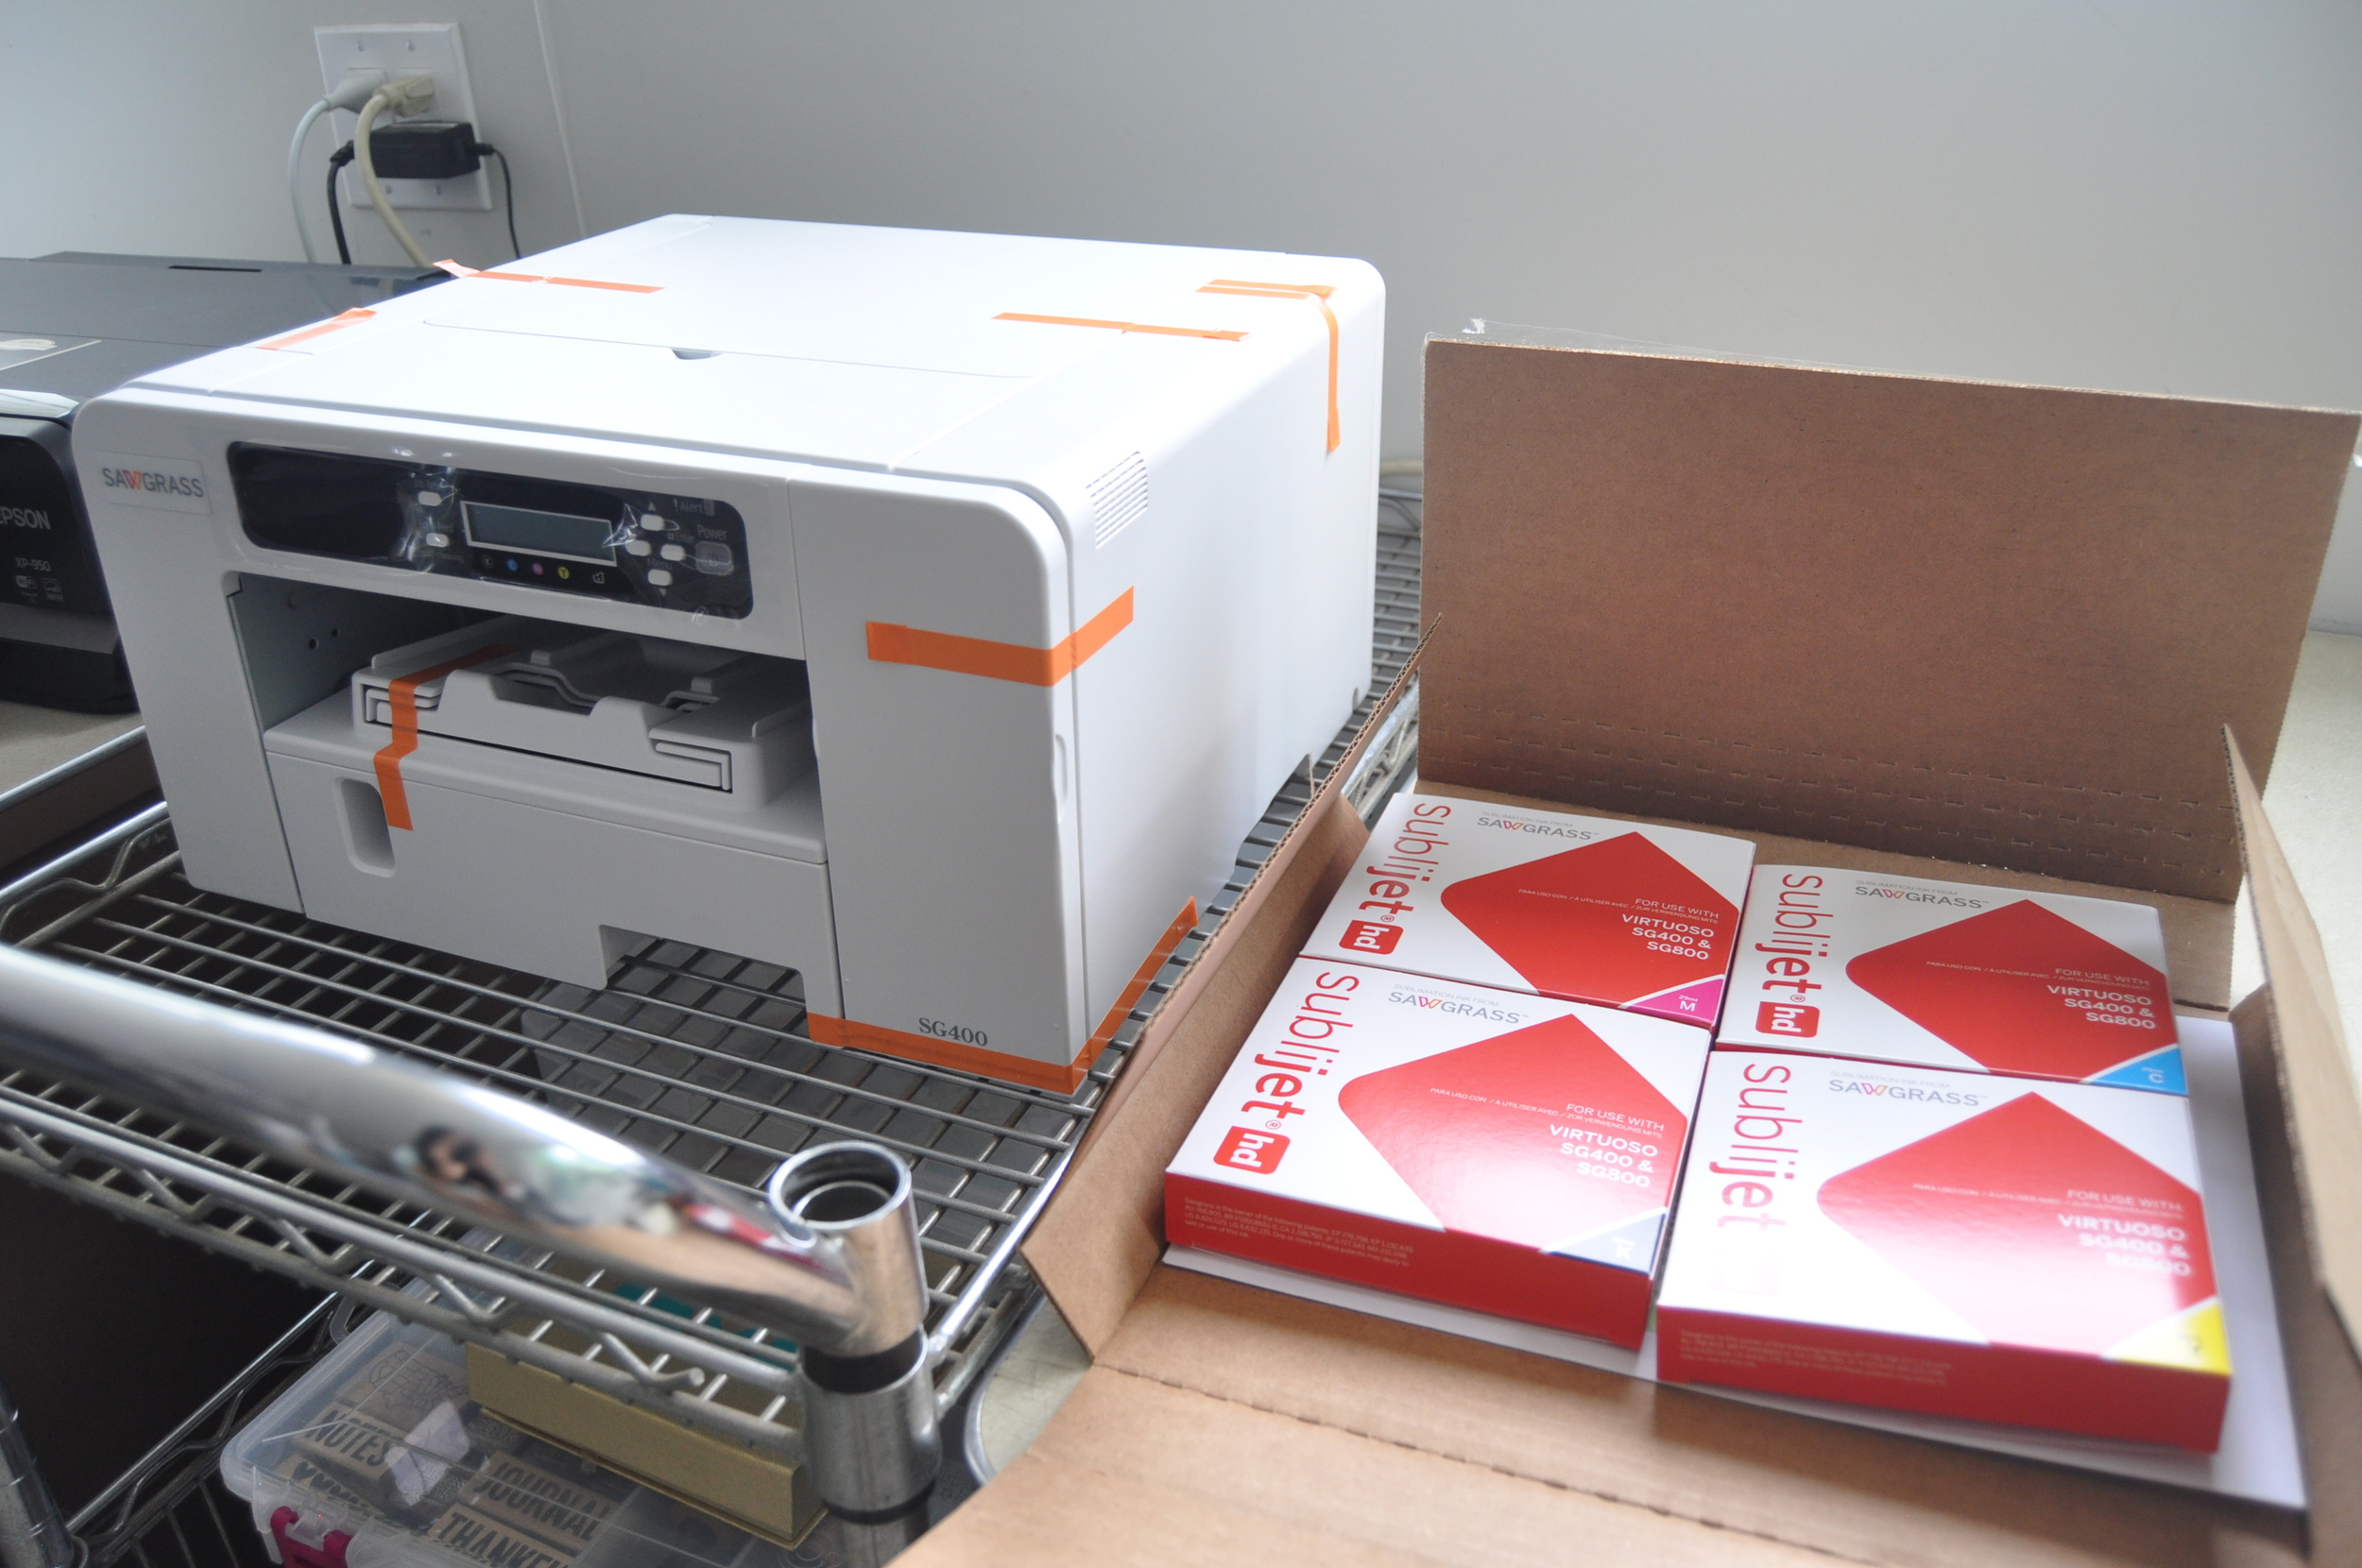 Amy Tangerine's Sublimation Printer